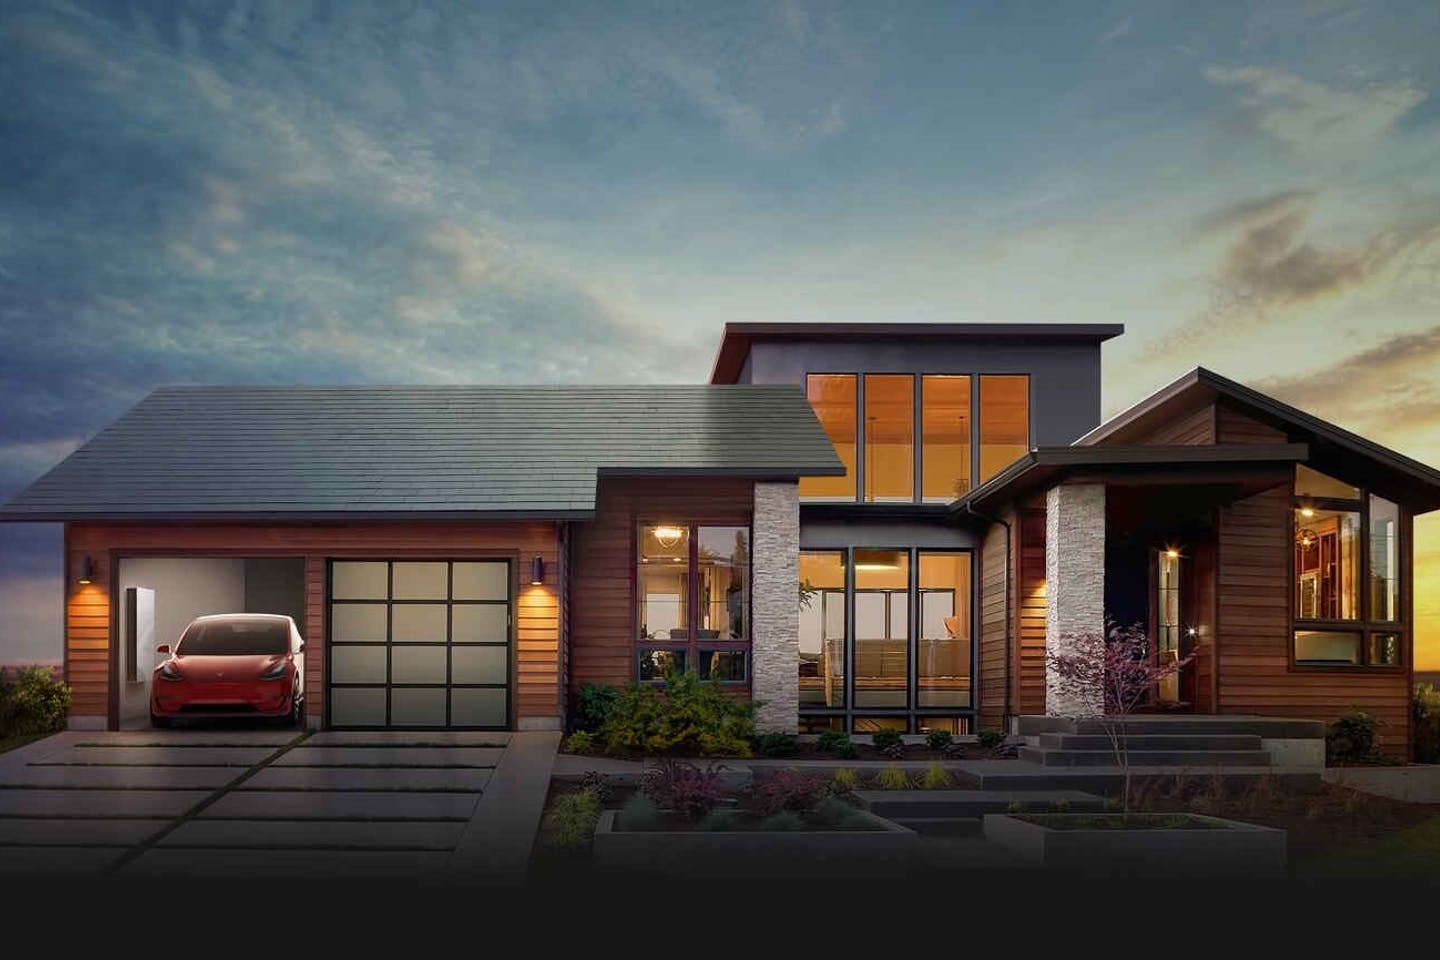 Model home with solar roof tile